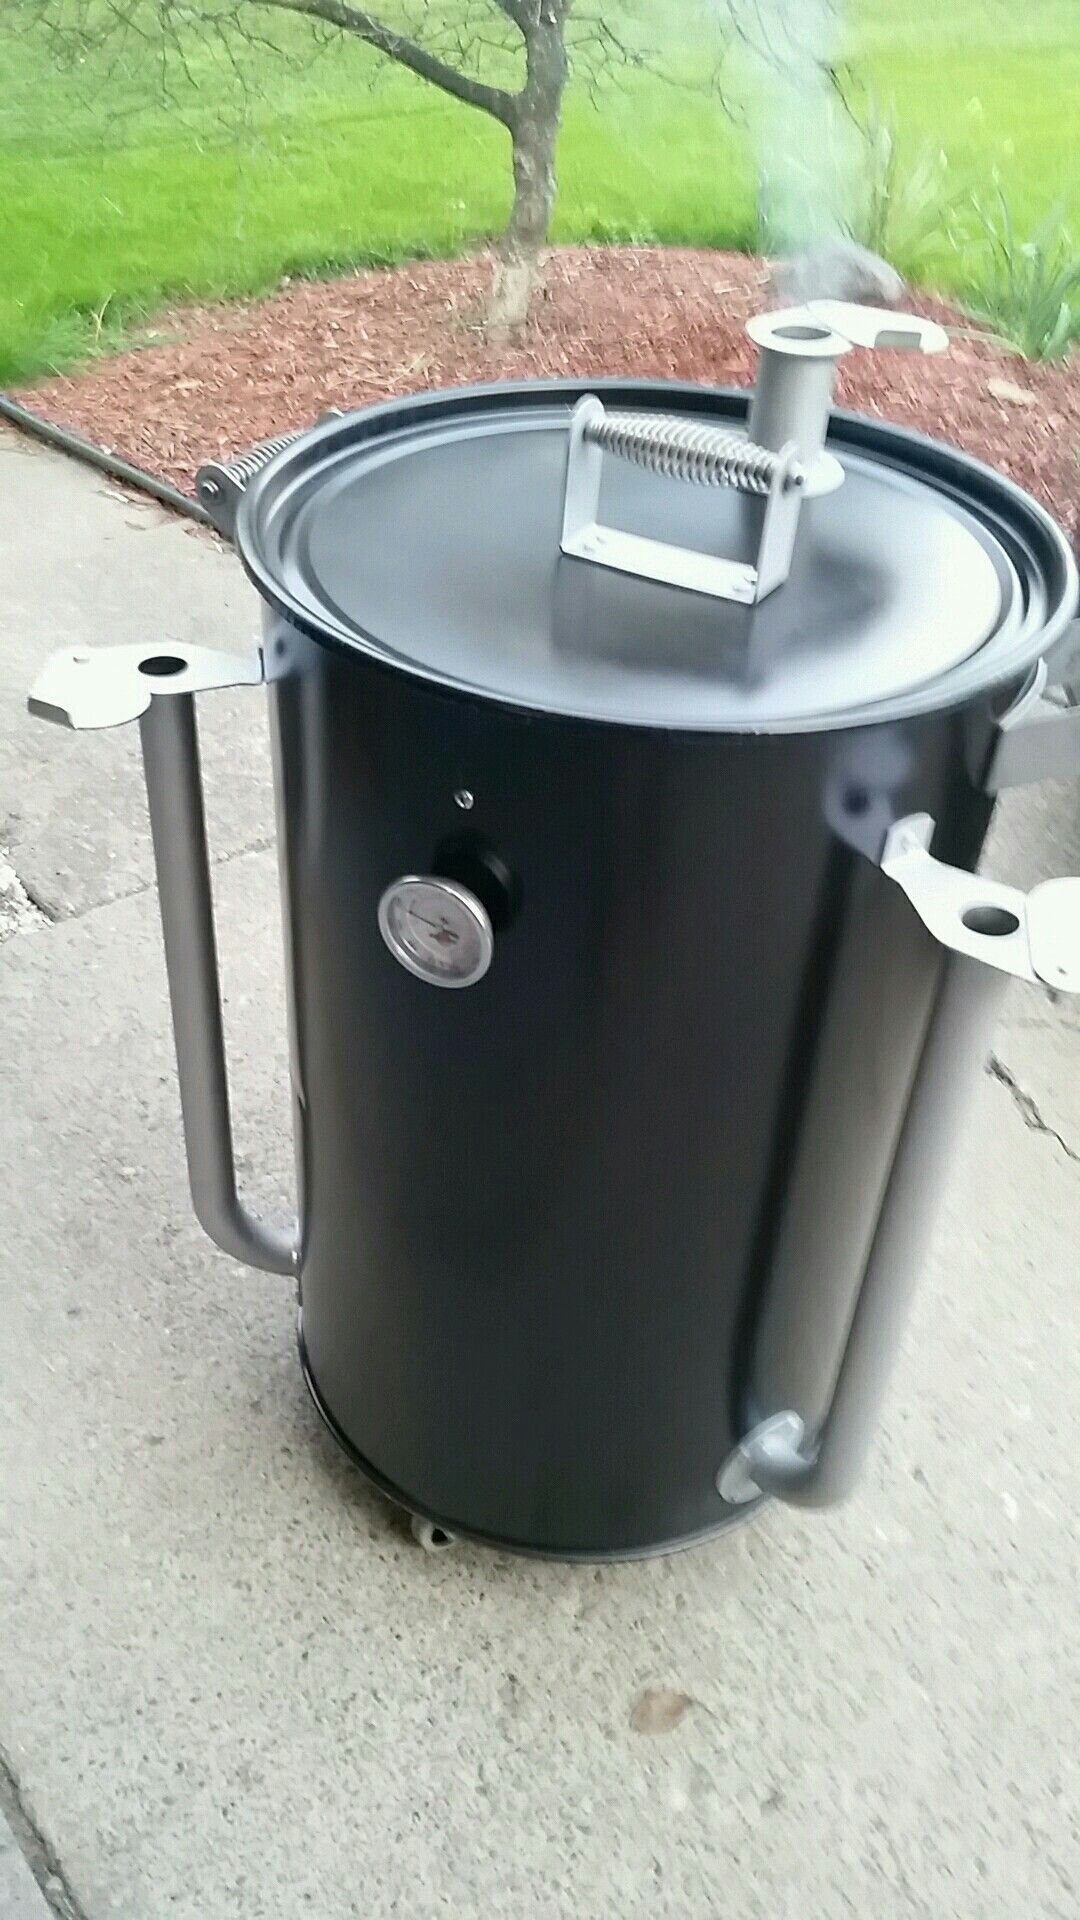 my own ugly drum smoker ugly drum smoker pinterest. Black Bedroom Furniture Sets. Home Design Ideas